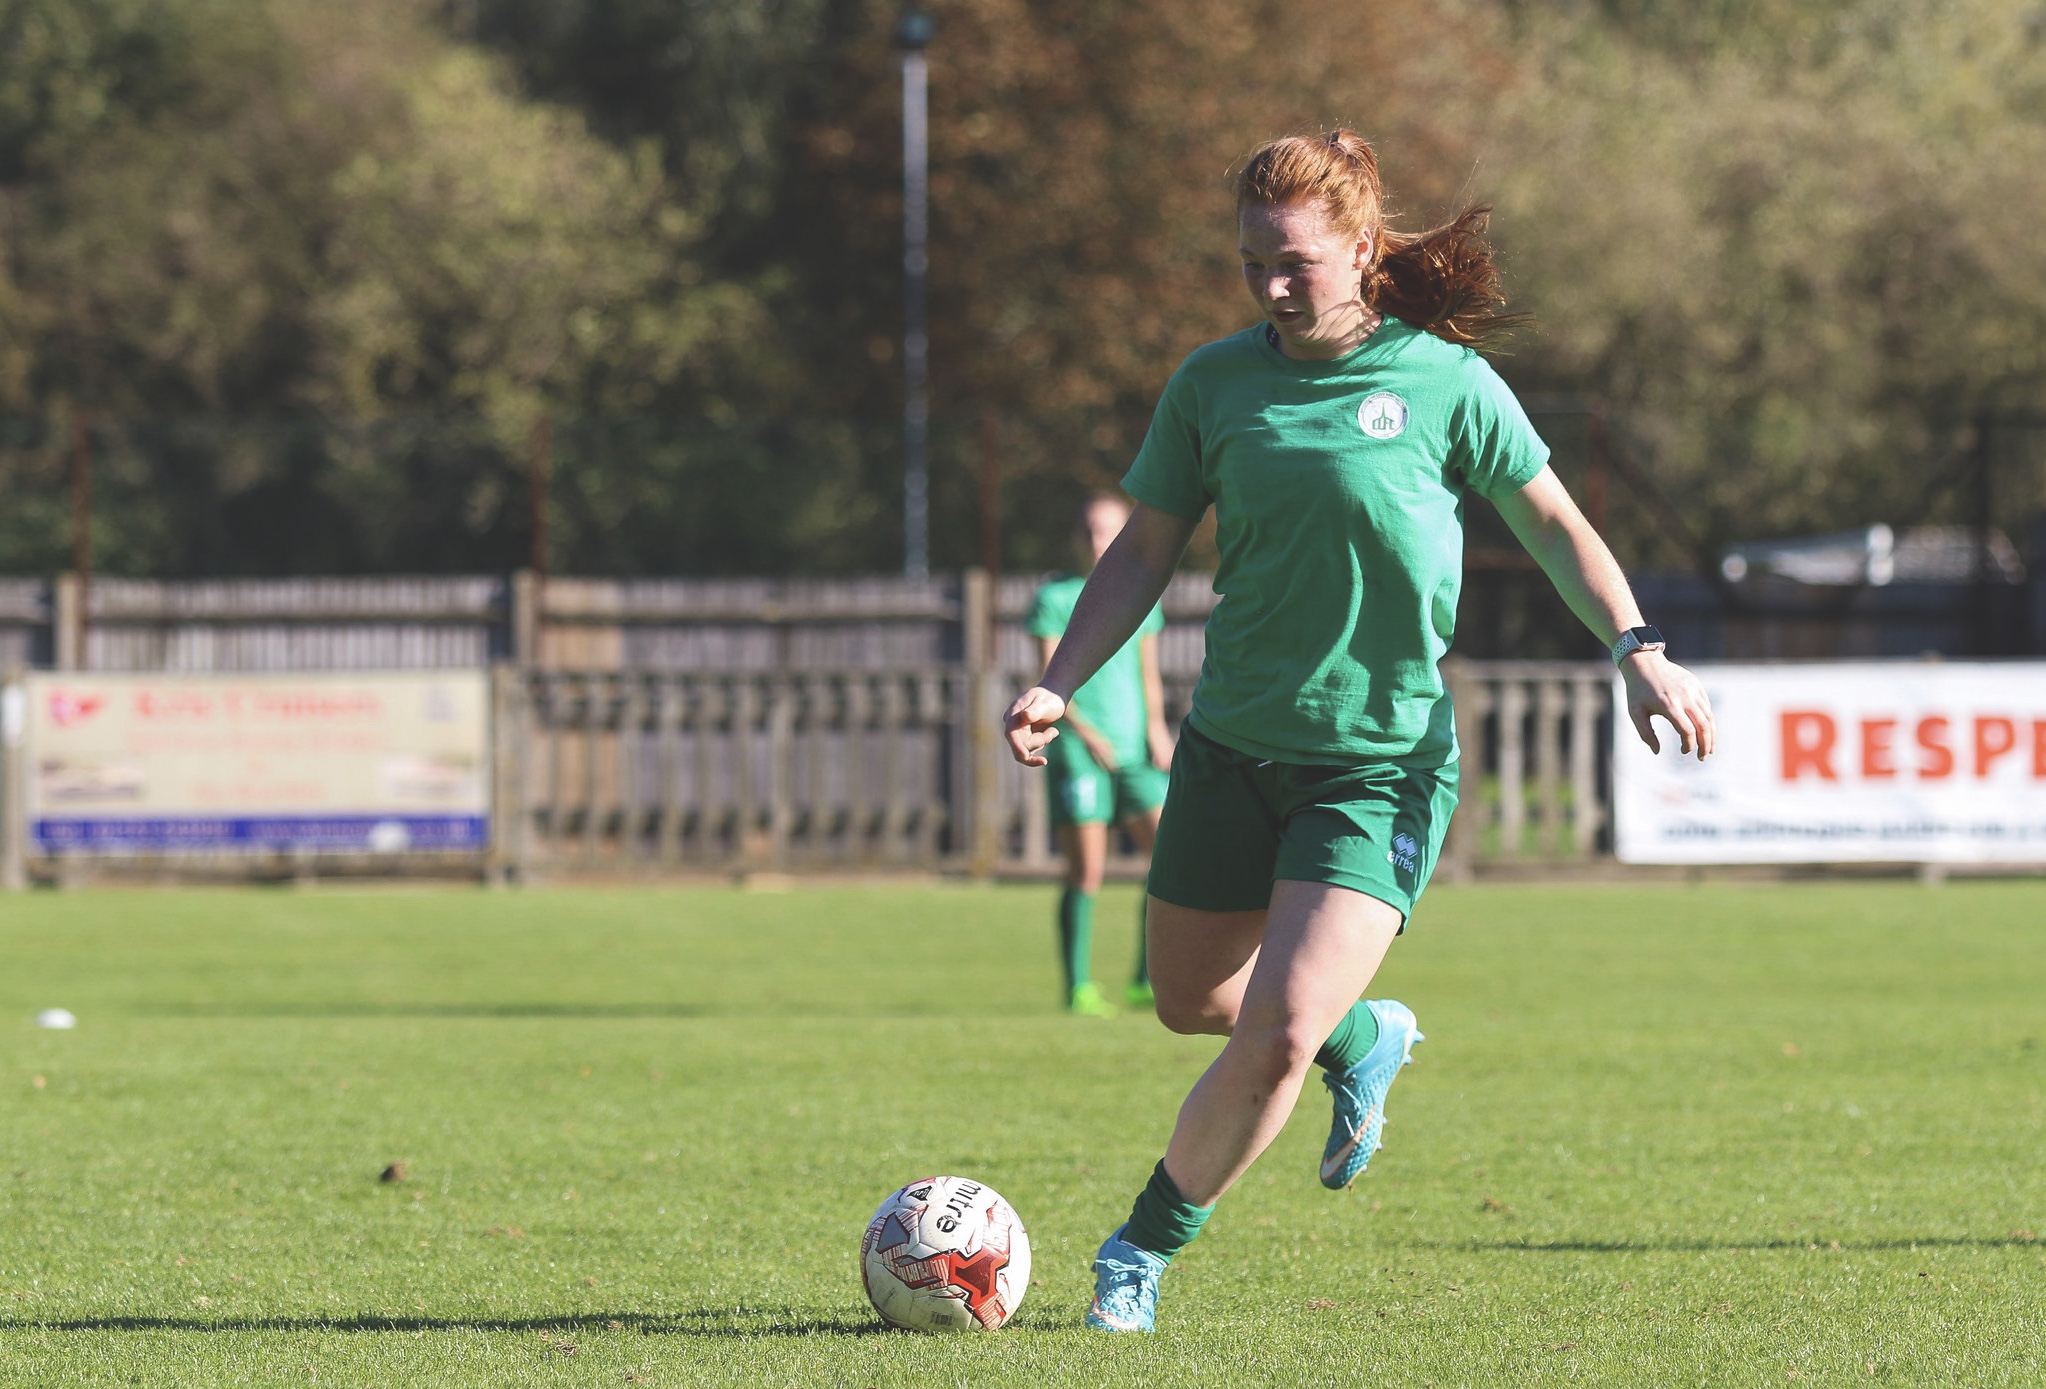 Jade Widdows in action for Chichester City. Taken by Sheena Booker.